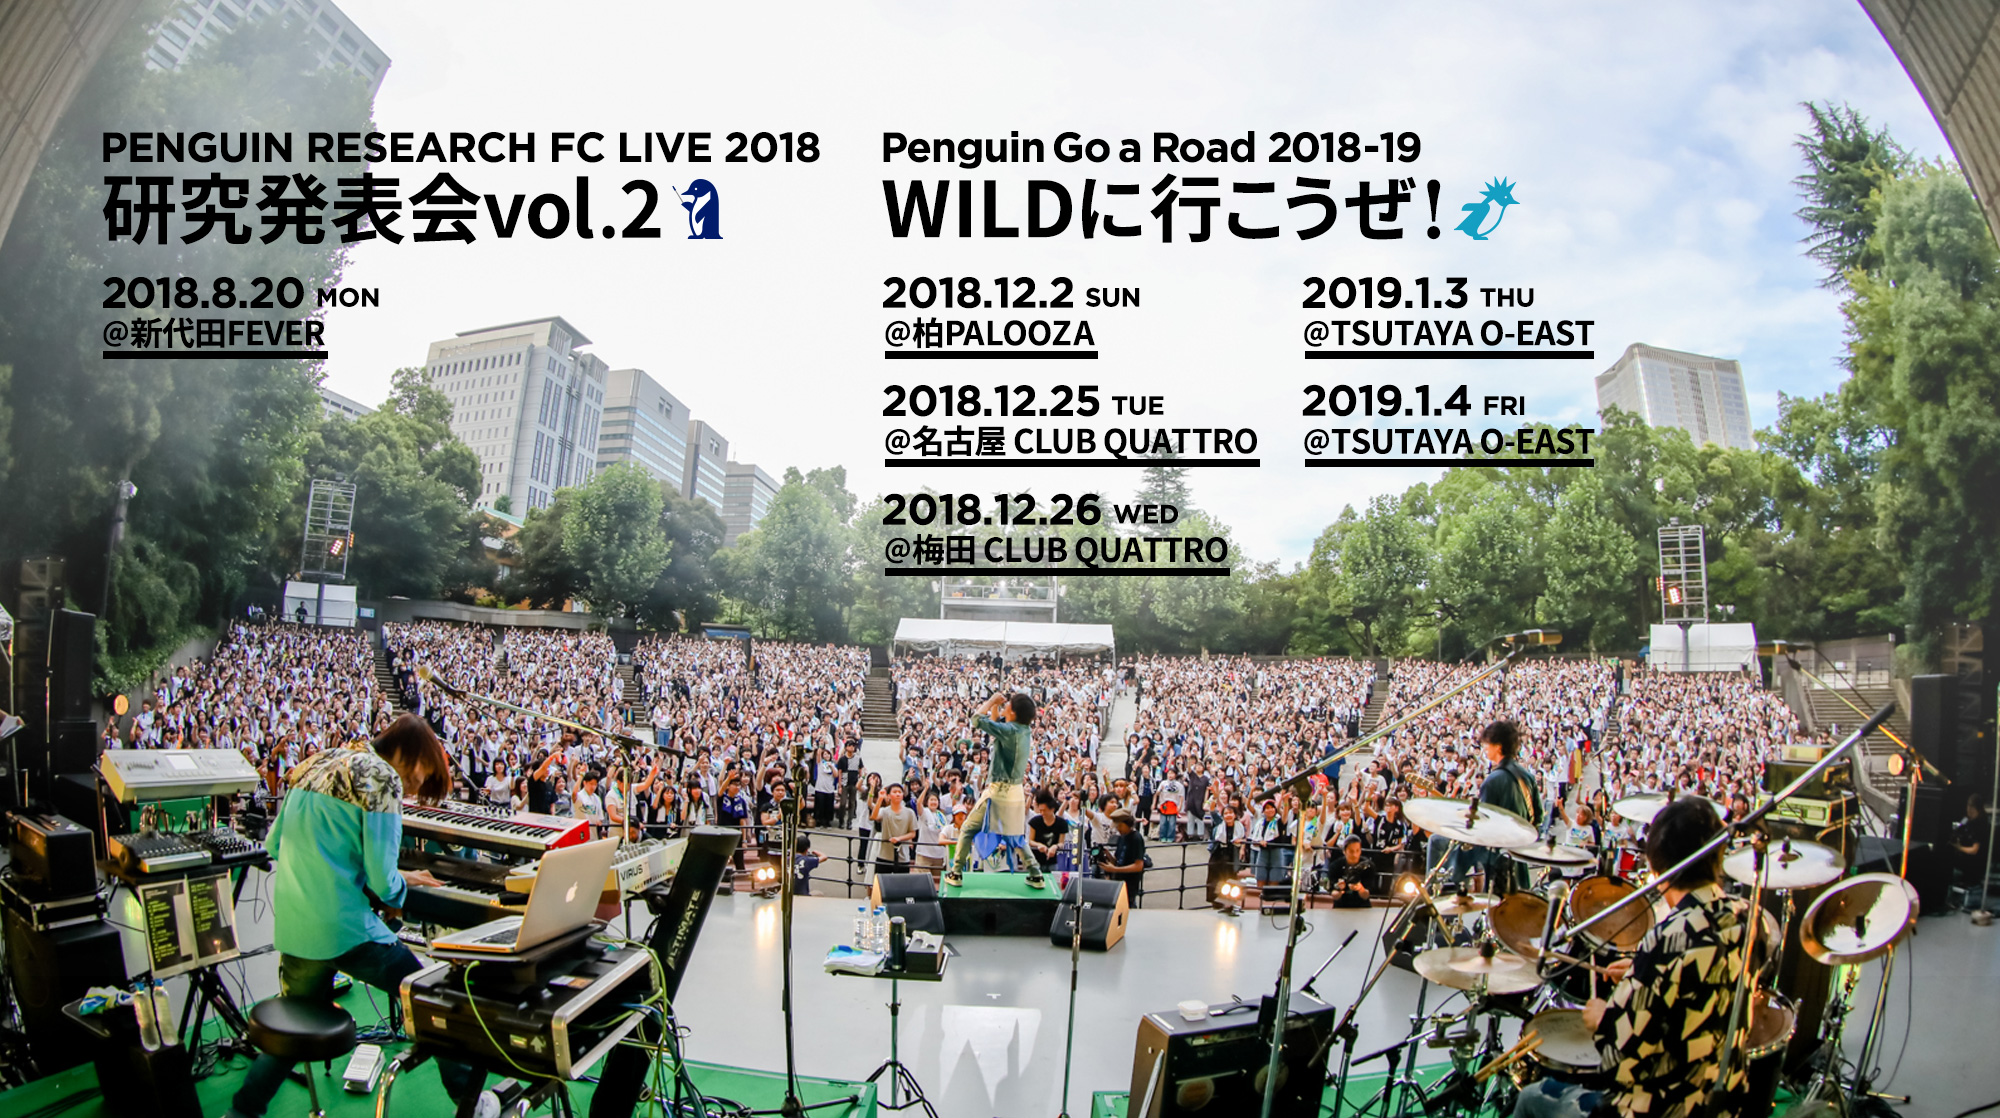 PENGUIN RESEARCH FC LIVE 2018「研究発表会vol.2」Penguin Go a Road 2018-19「WILDに行こうぜ!」